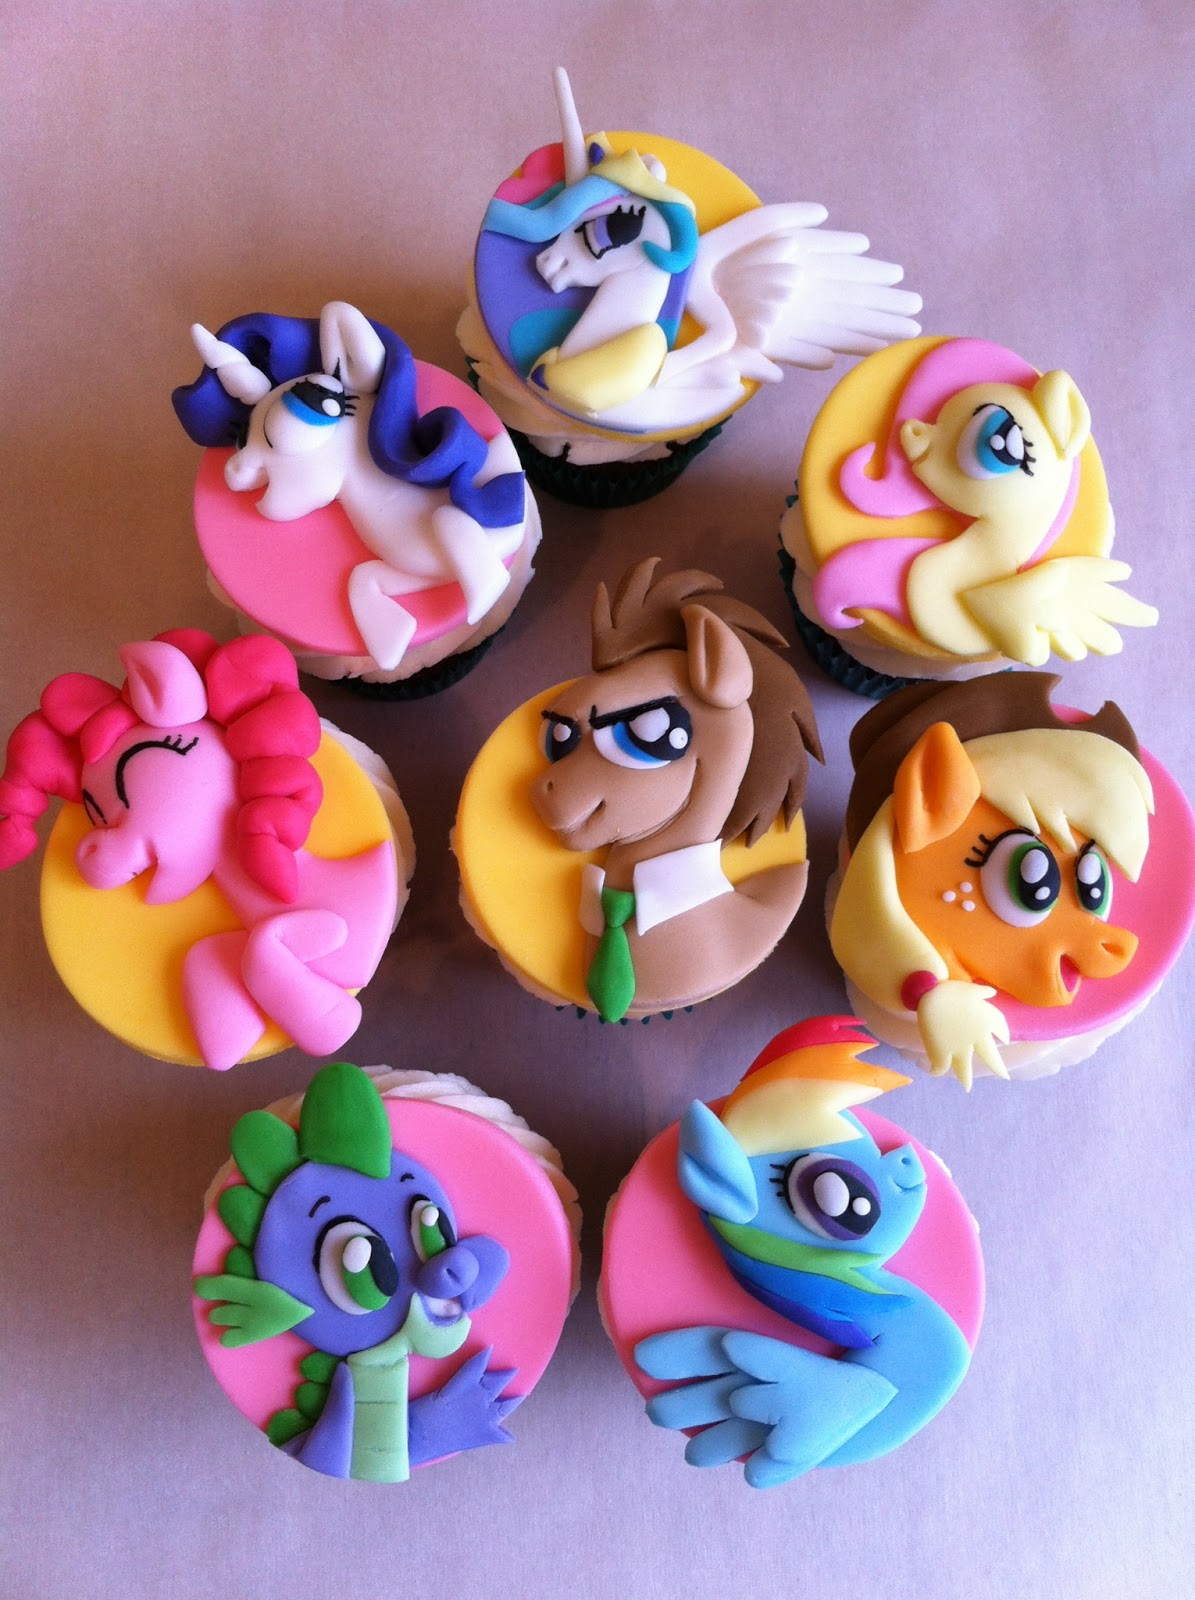 The Incredible Stuffs: Awesome My LIttle Pony Cupcakes